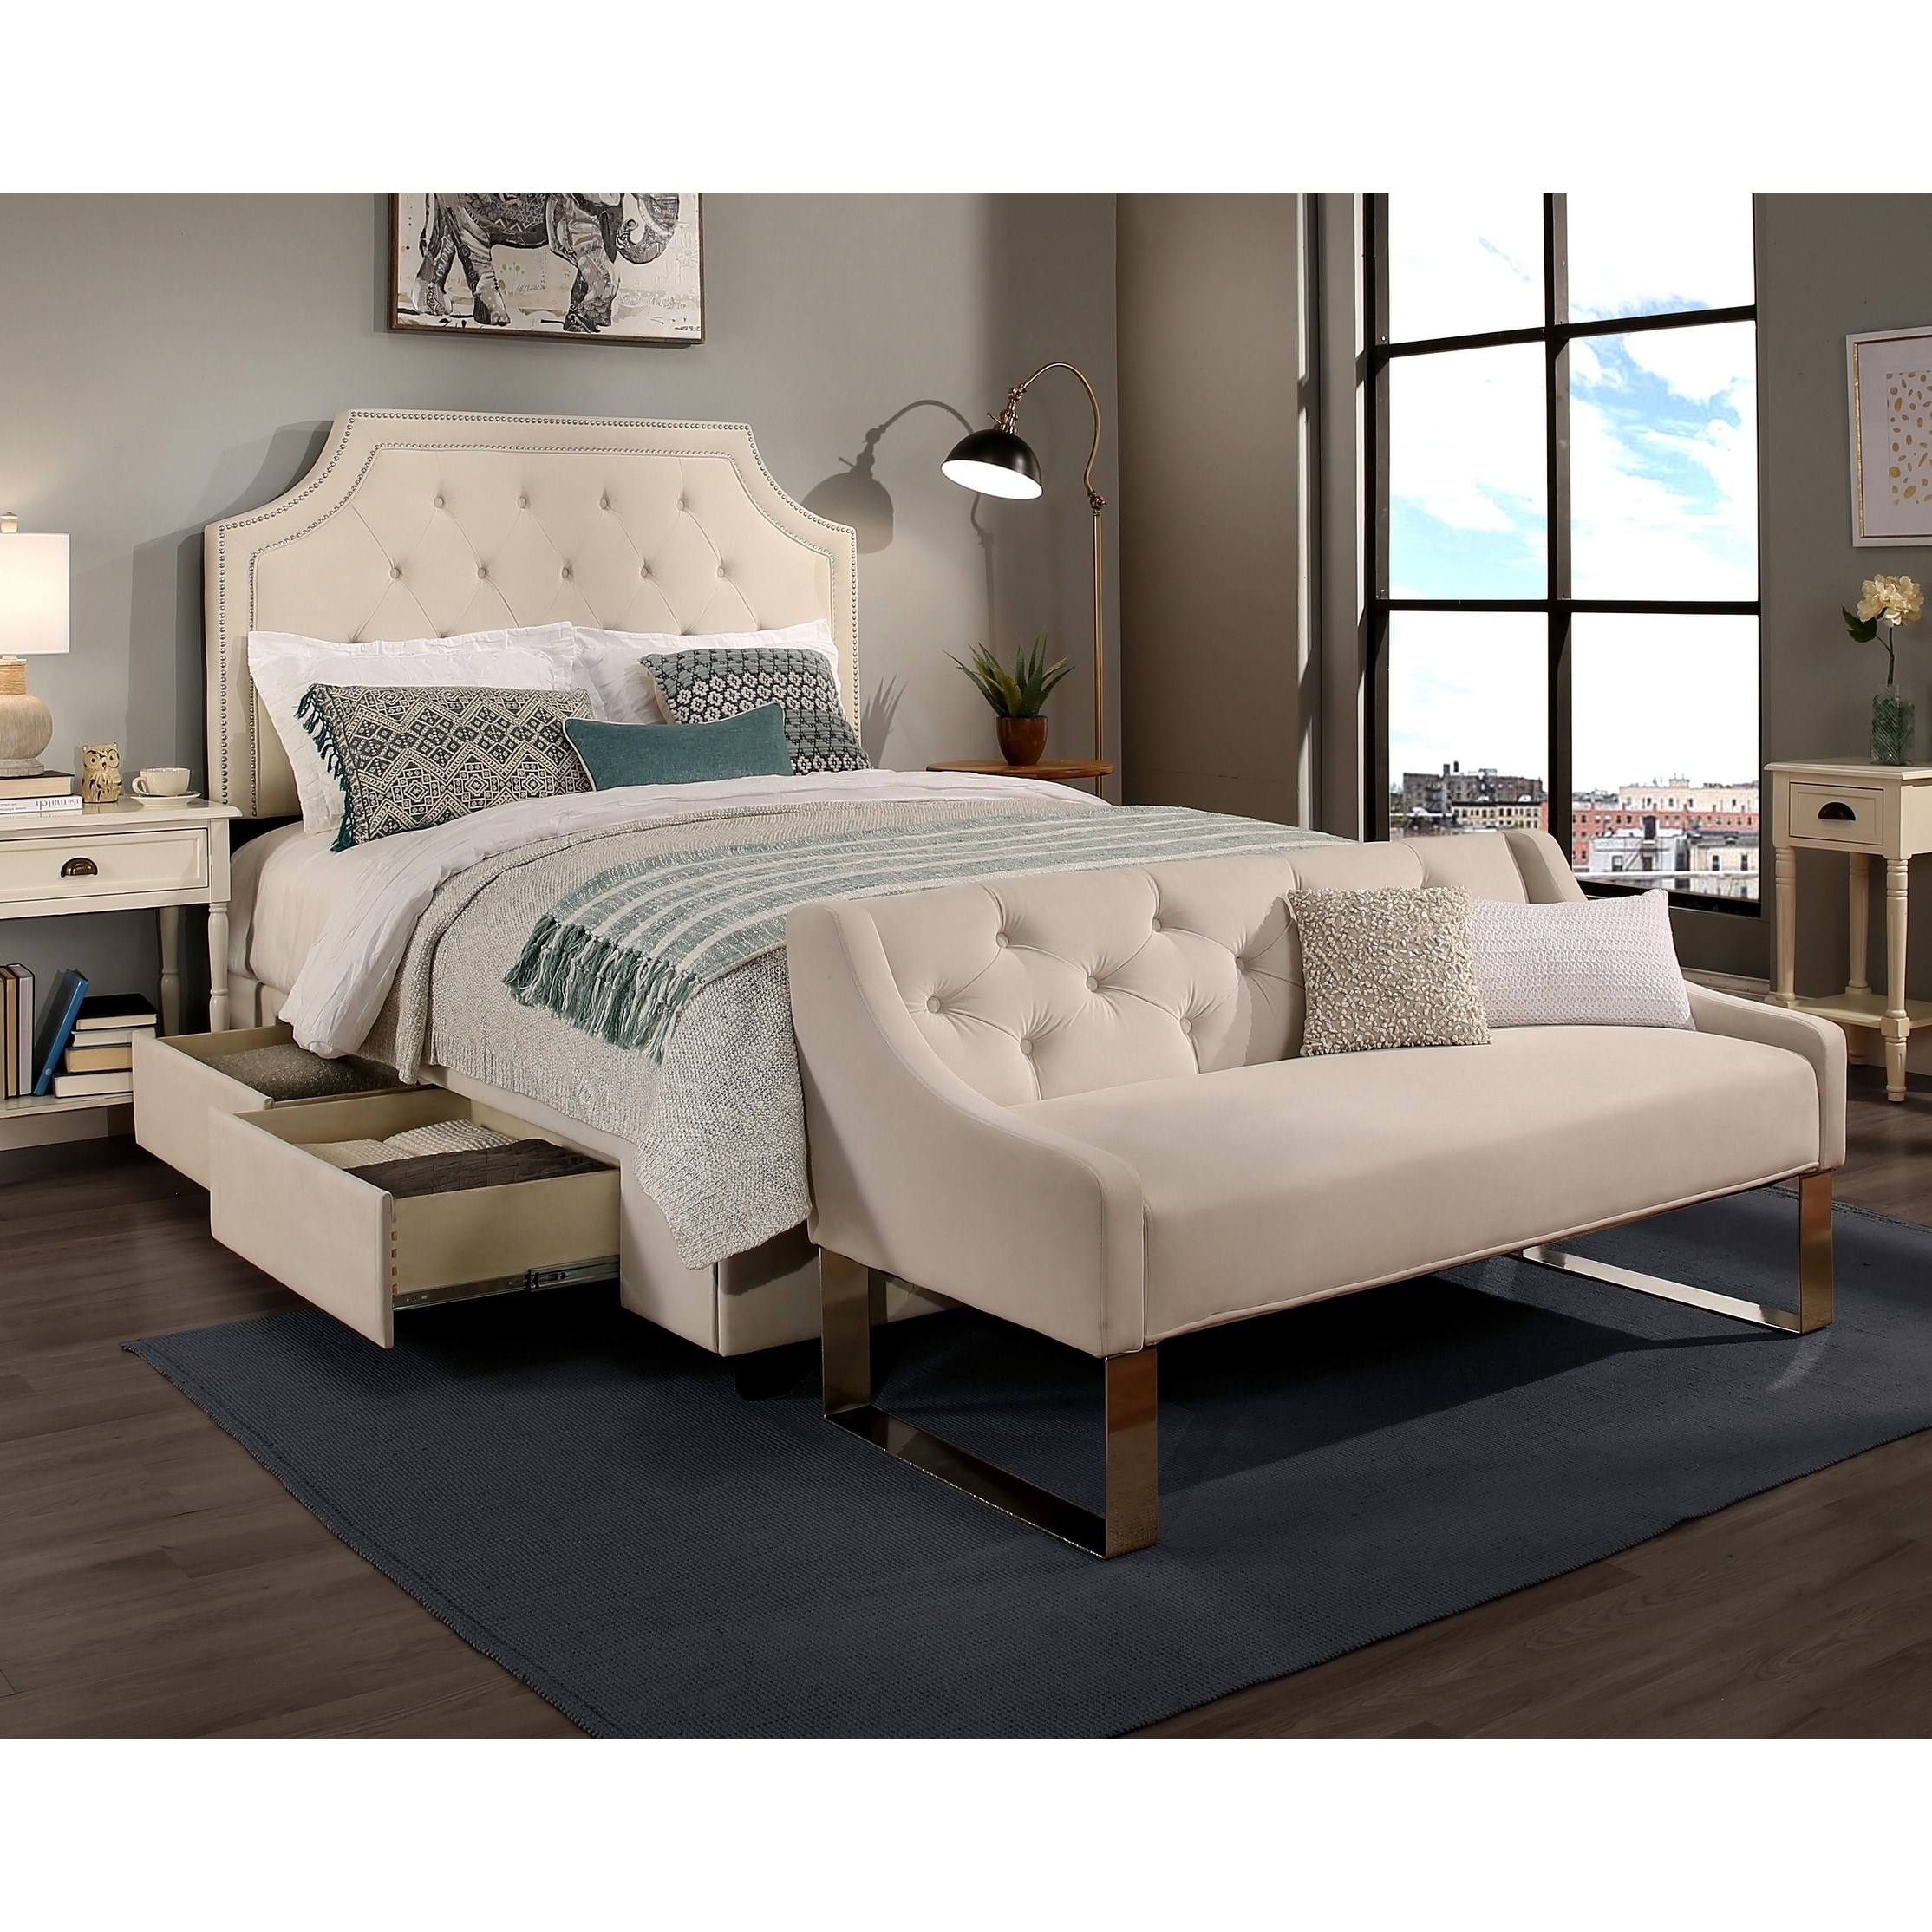 Republic Design House Steel Core Audrey Storage Bed With Tufted Sofa Bench Overstock 22250520